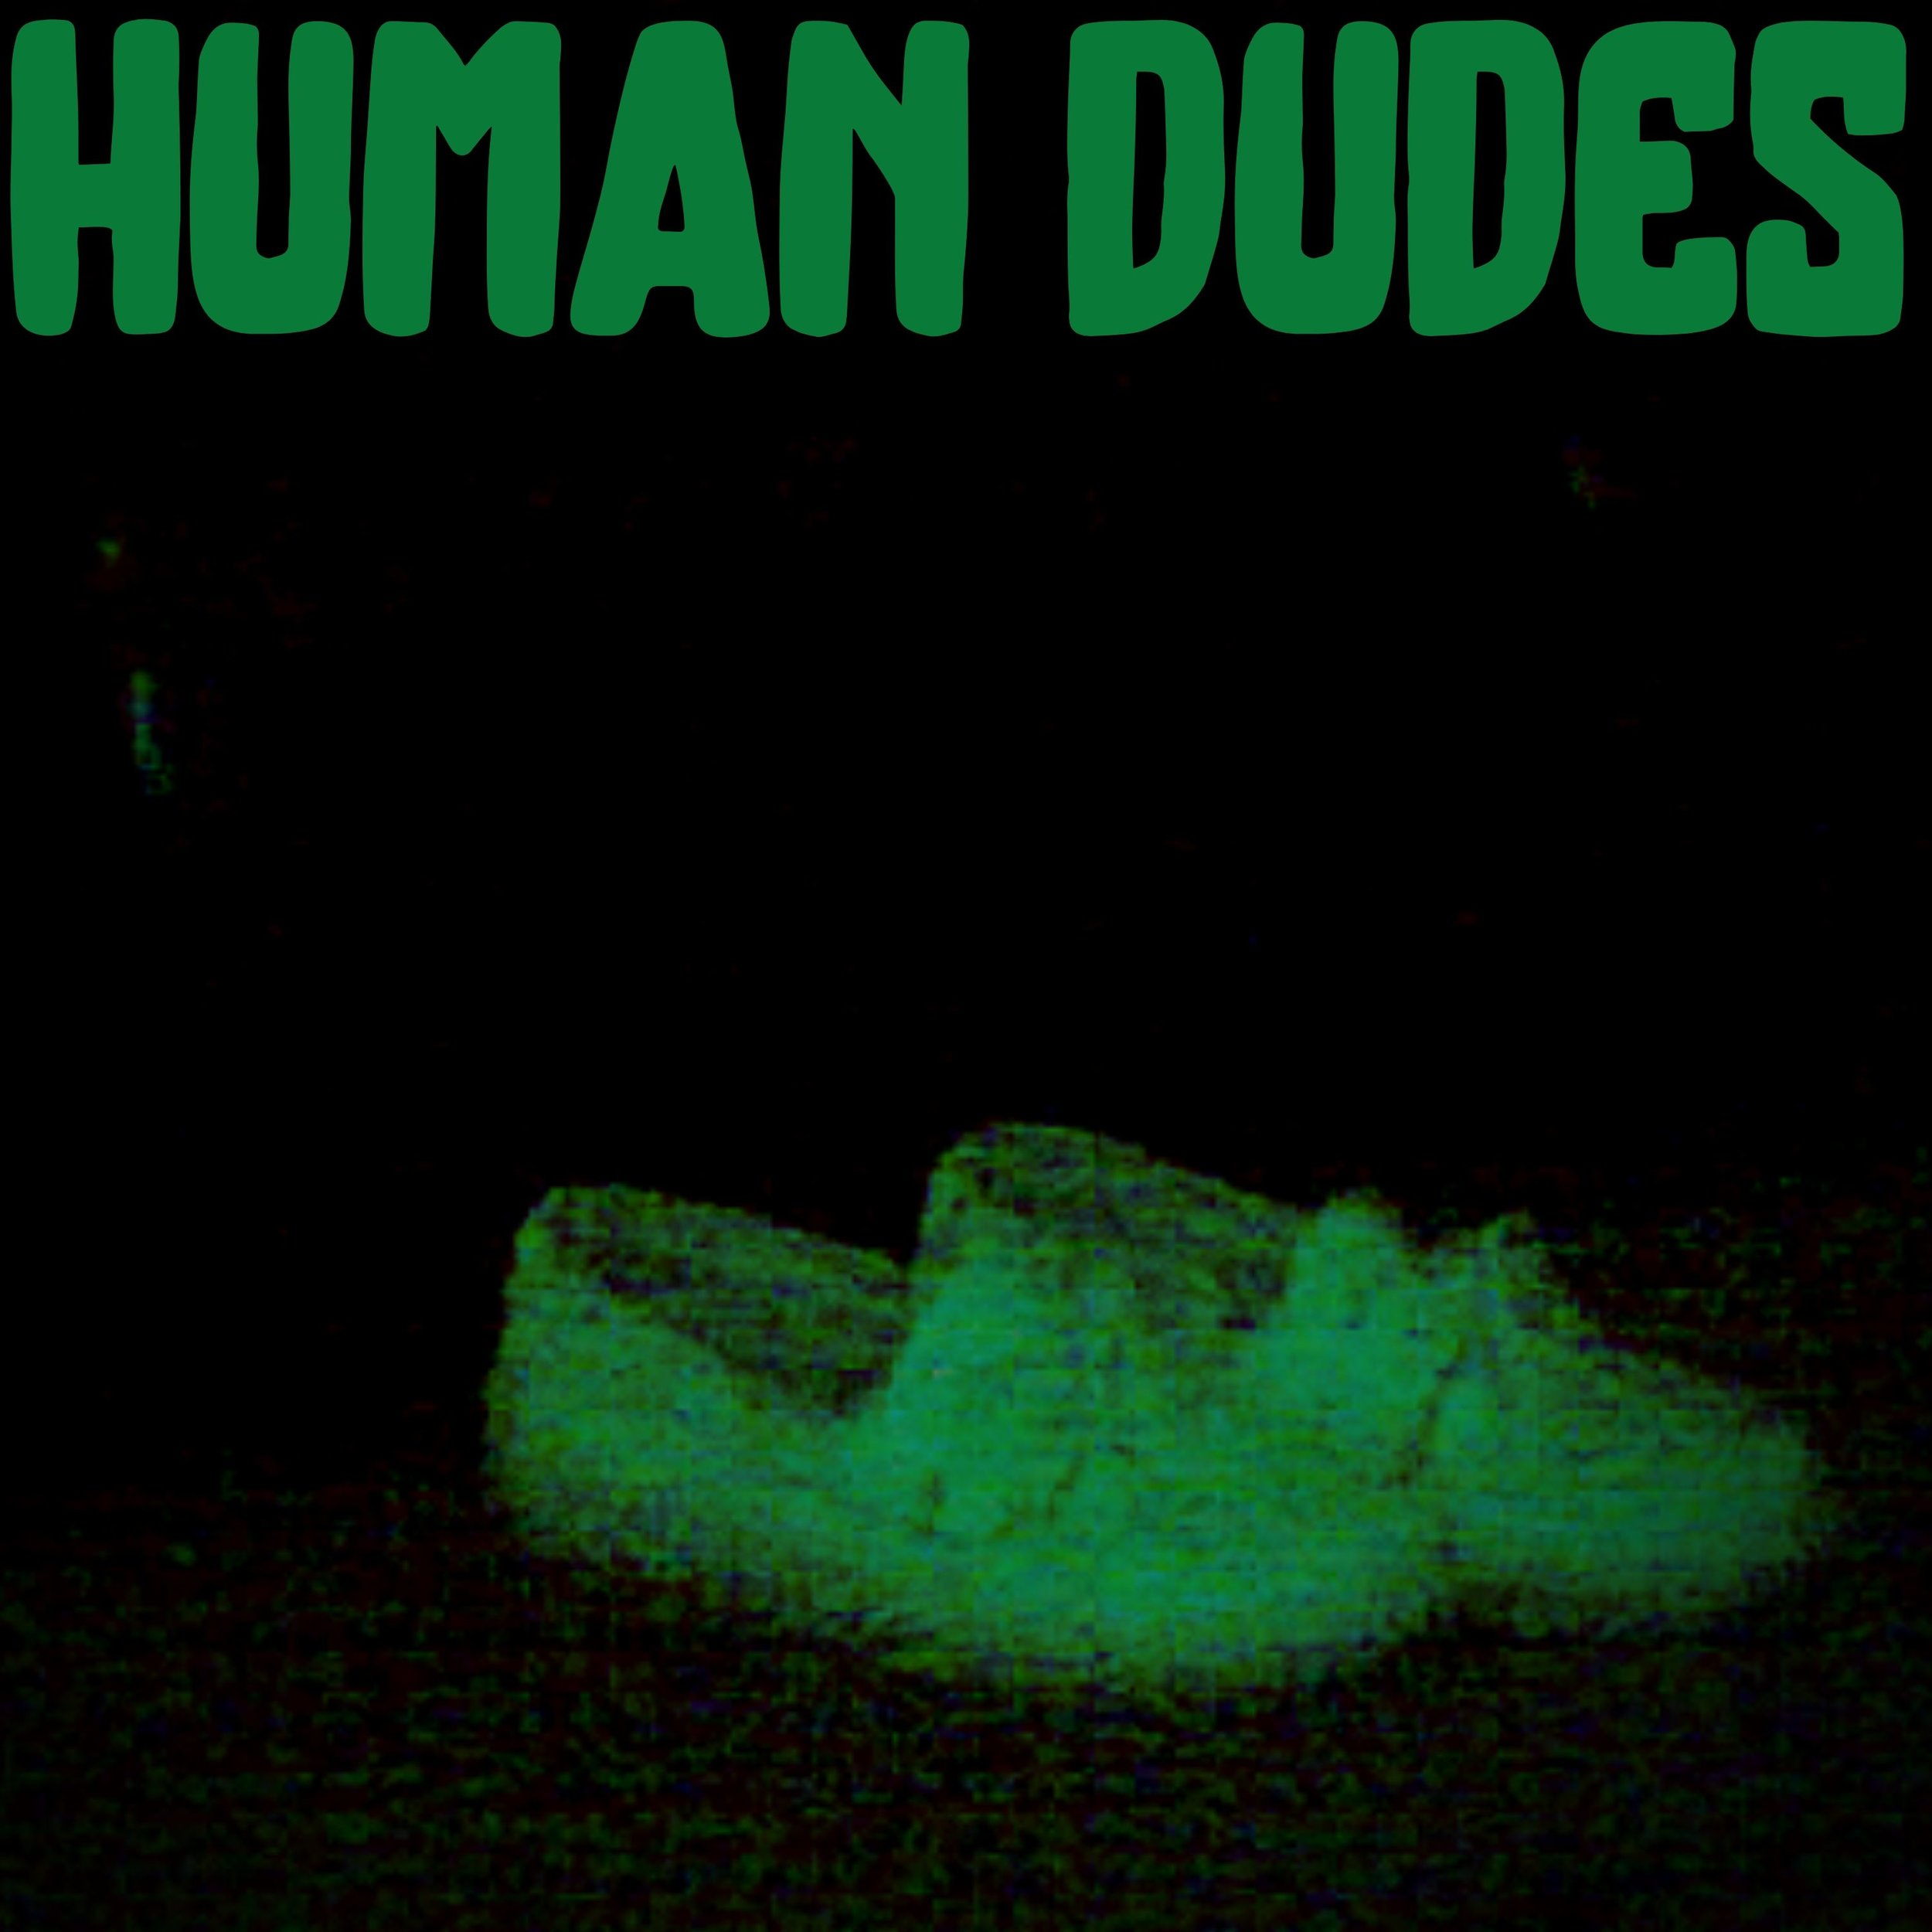 HUMAN DUDES - 2011 - Demos and outtakes from Club 166, feat. Dick D'Card, EZ Kee, Ruby and more.